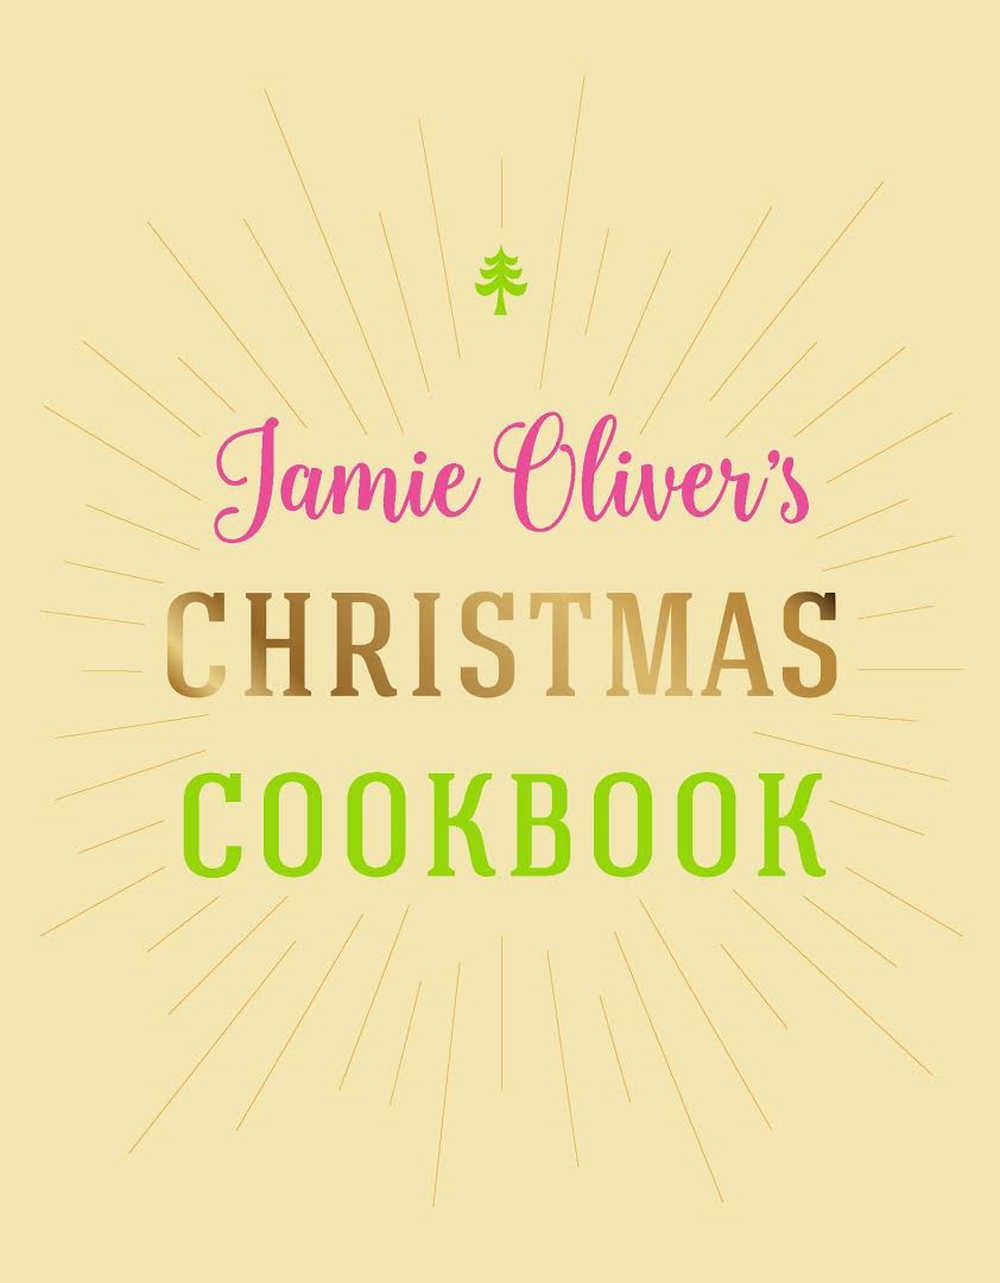 Jamie Oliver's Christmas Cookbook (easons.ie, €19.99)